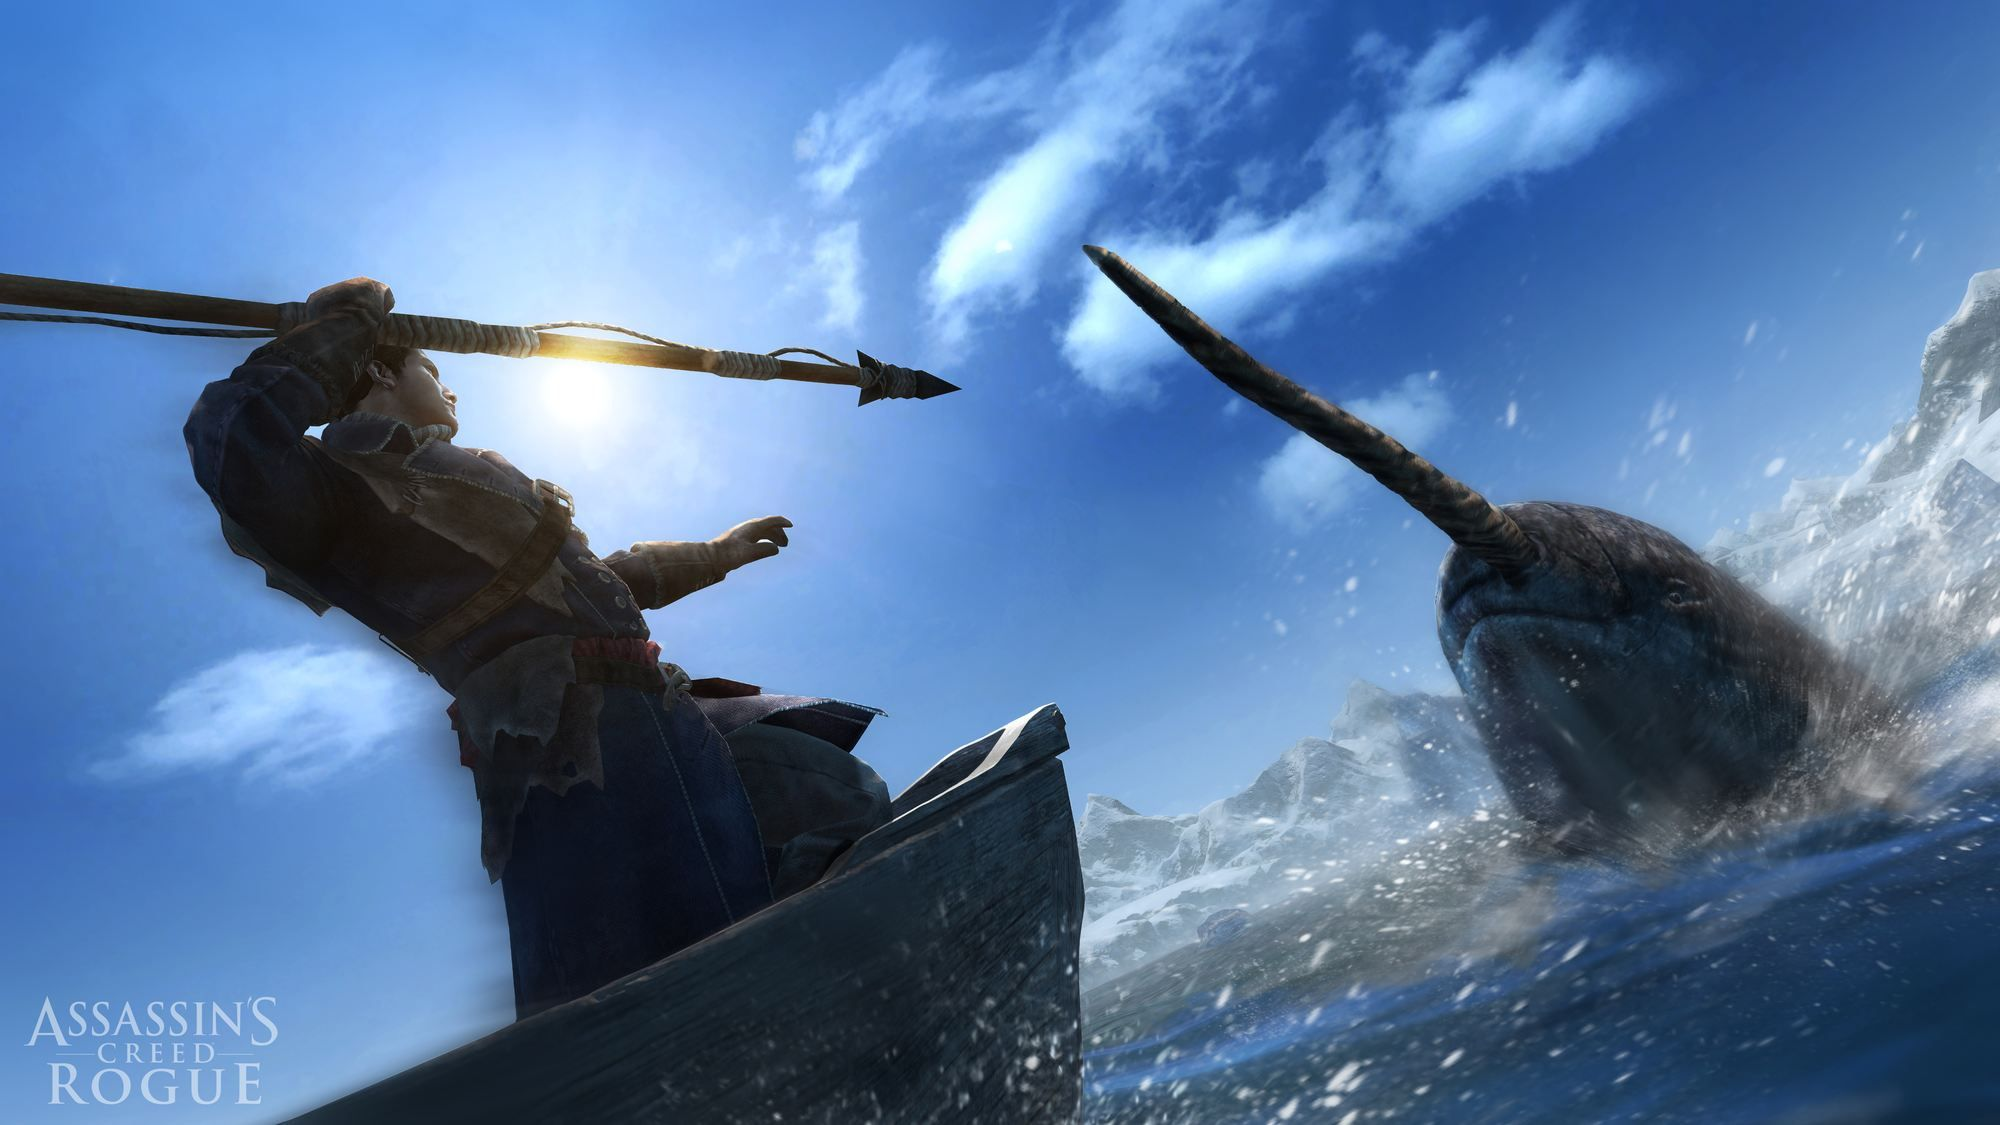 Assassin's Creed Rogue Remastered (PS4) - 7